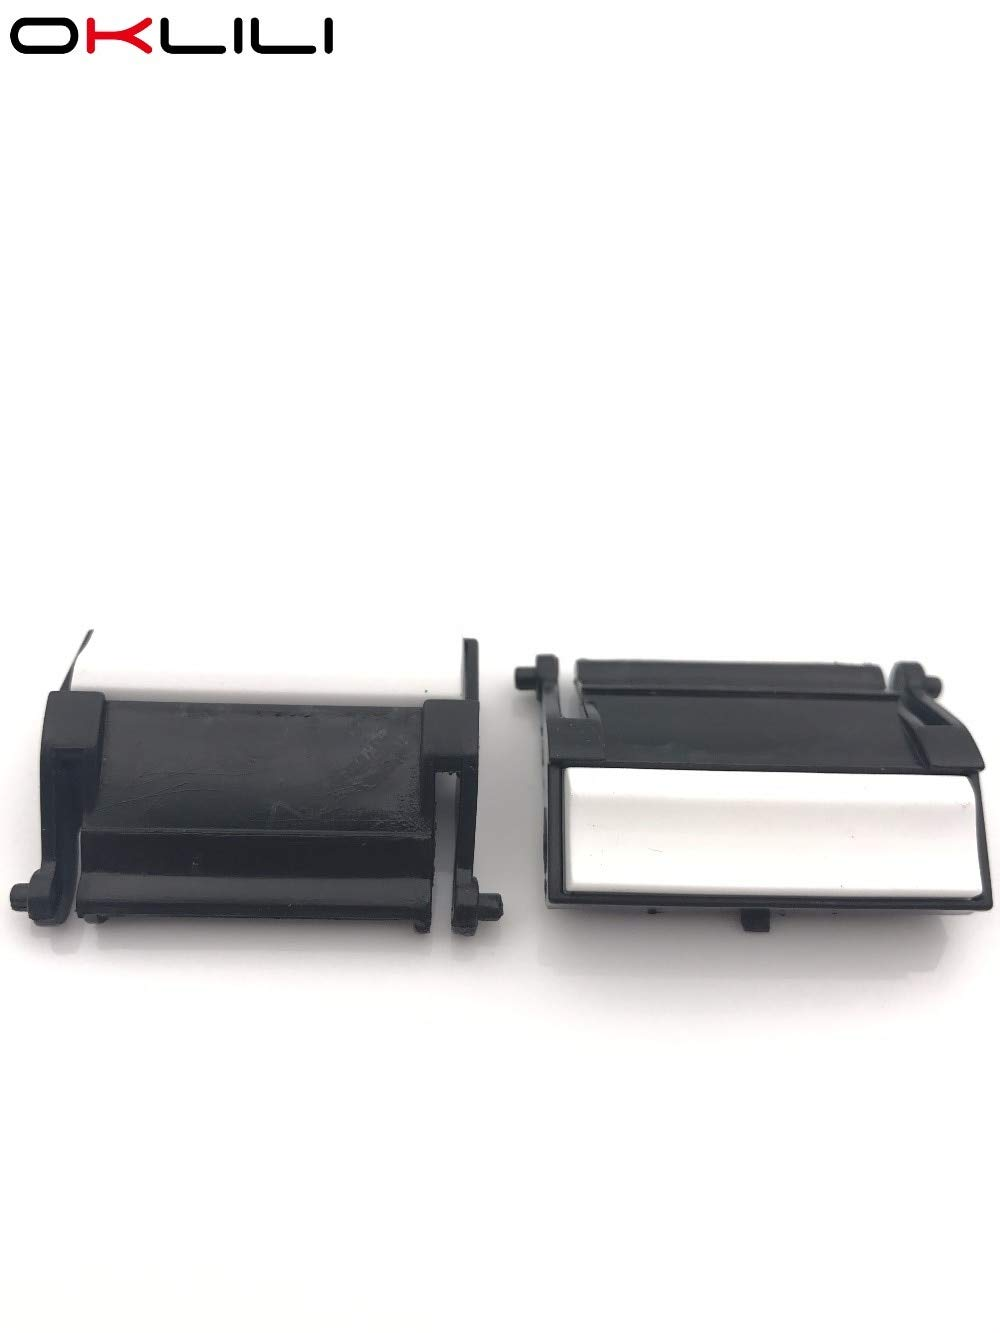 Printer Parts JC97-01709A ADF Separation Pad Assy MEA Unit Holder for Samsung SCX4016 SCX4116 SCX4216 SCX4321 SCX4521 SCX4520 SCX4720 SCX4725